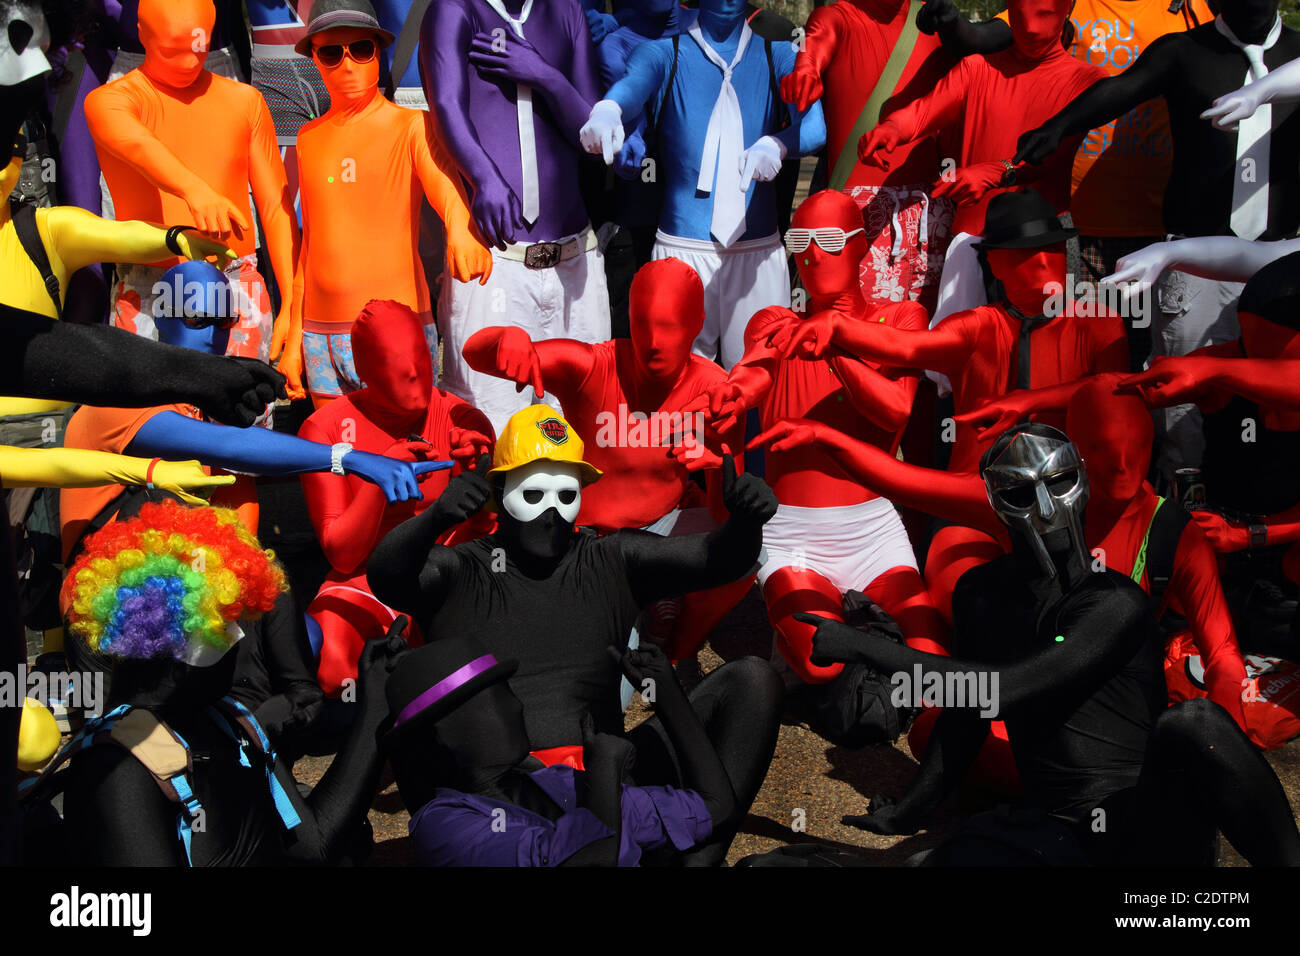 Fancy dress costume Morph Photo Stock